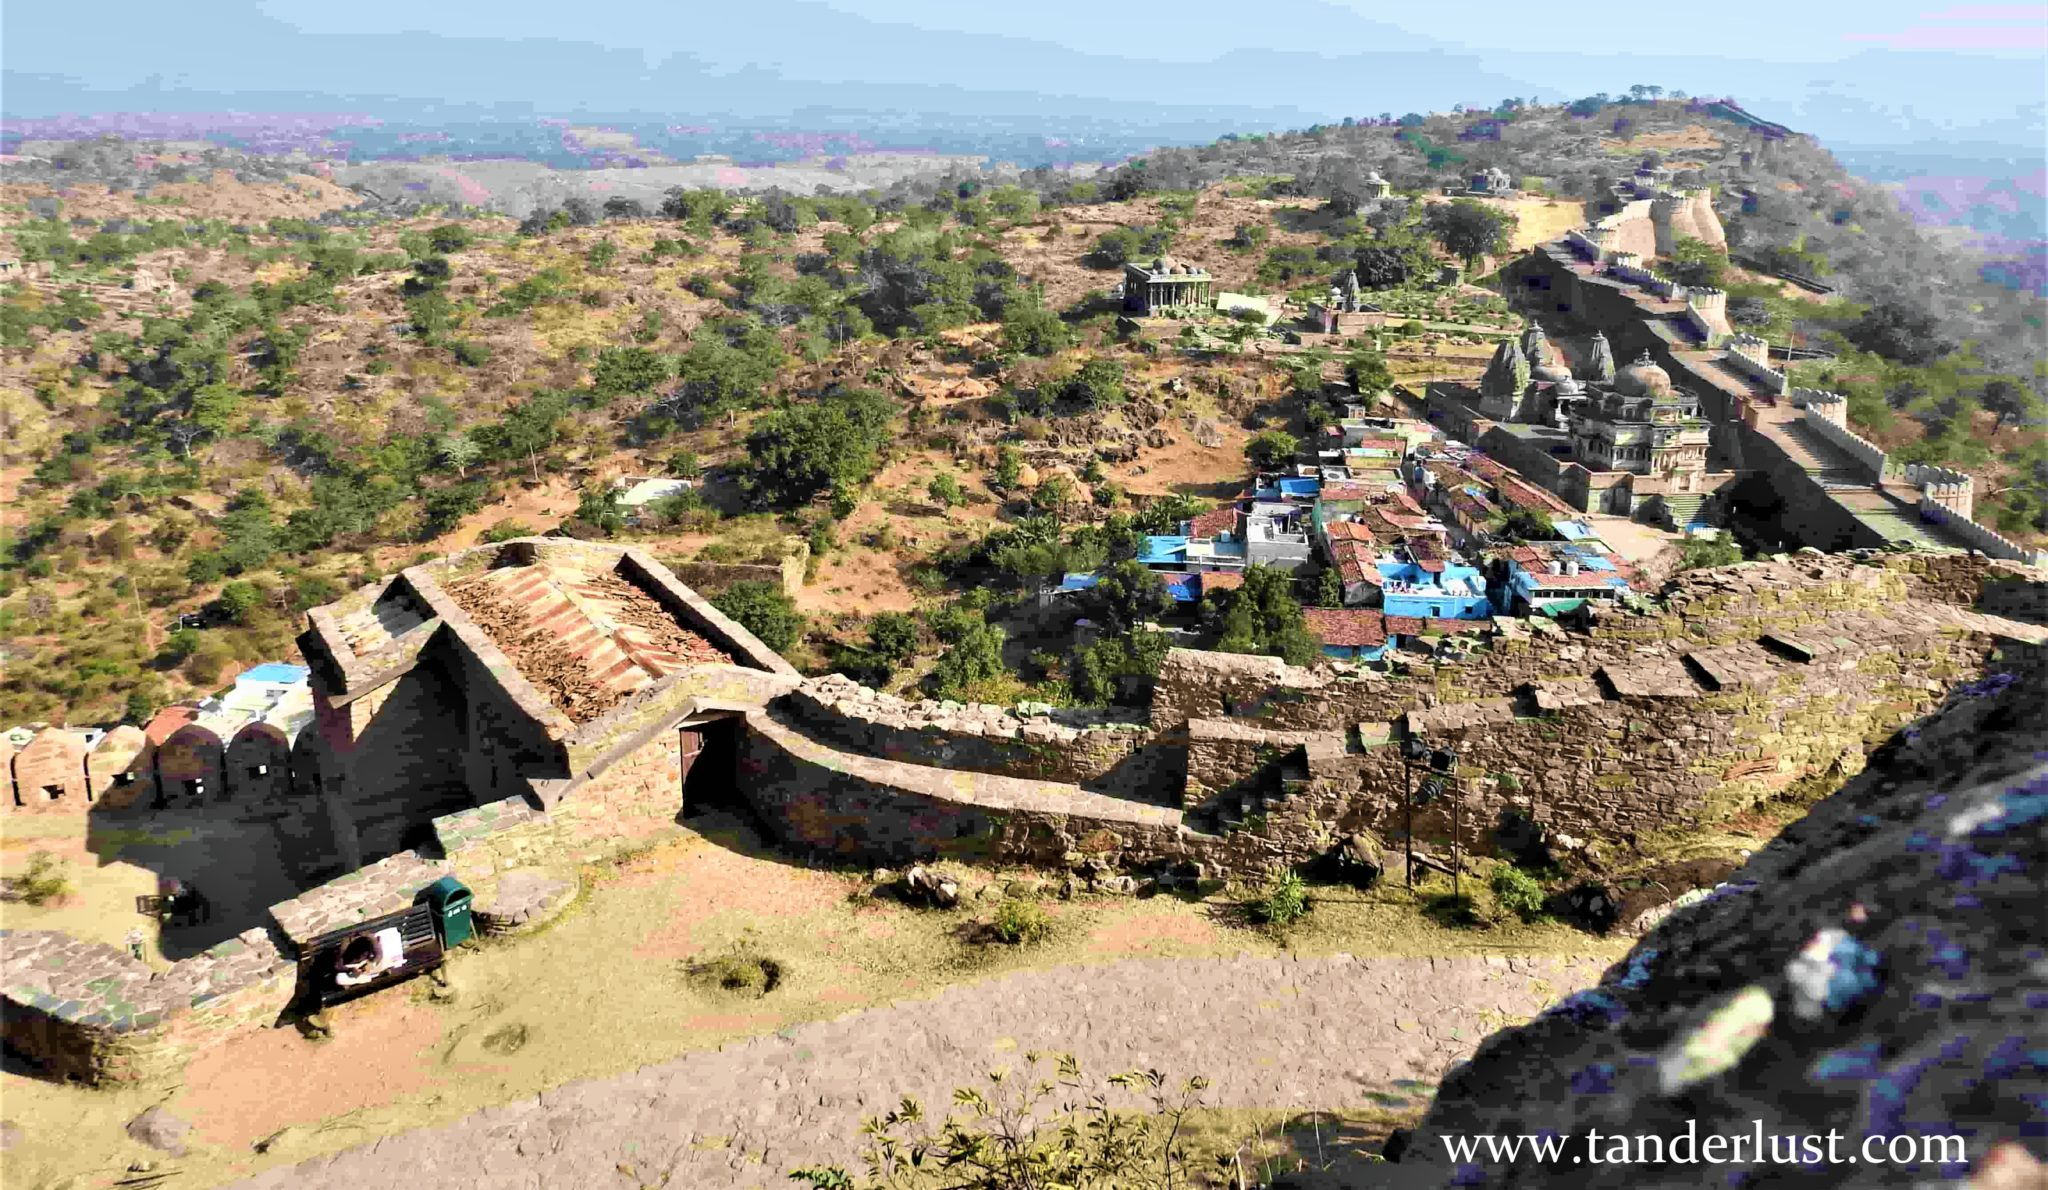 Kumbhalgarh fort: A day trip to the great wall of India!